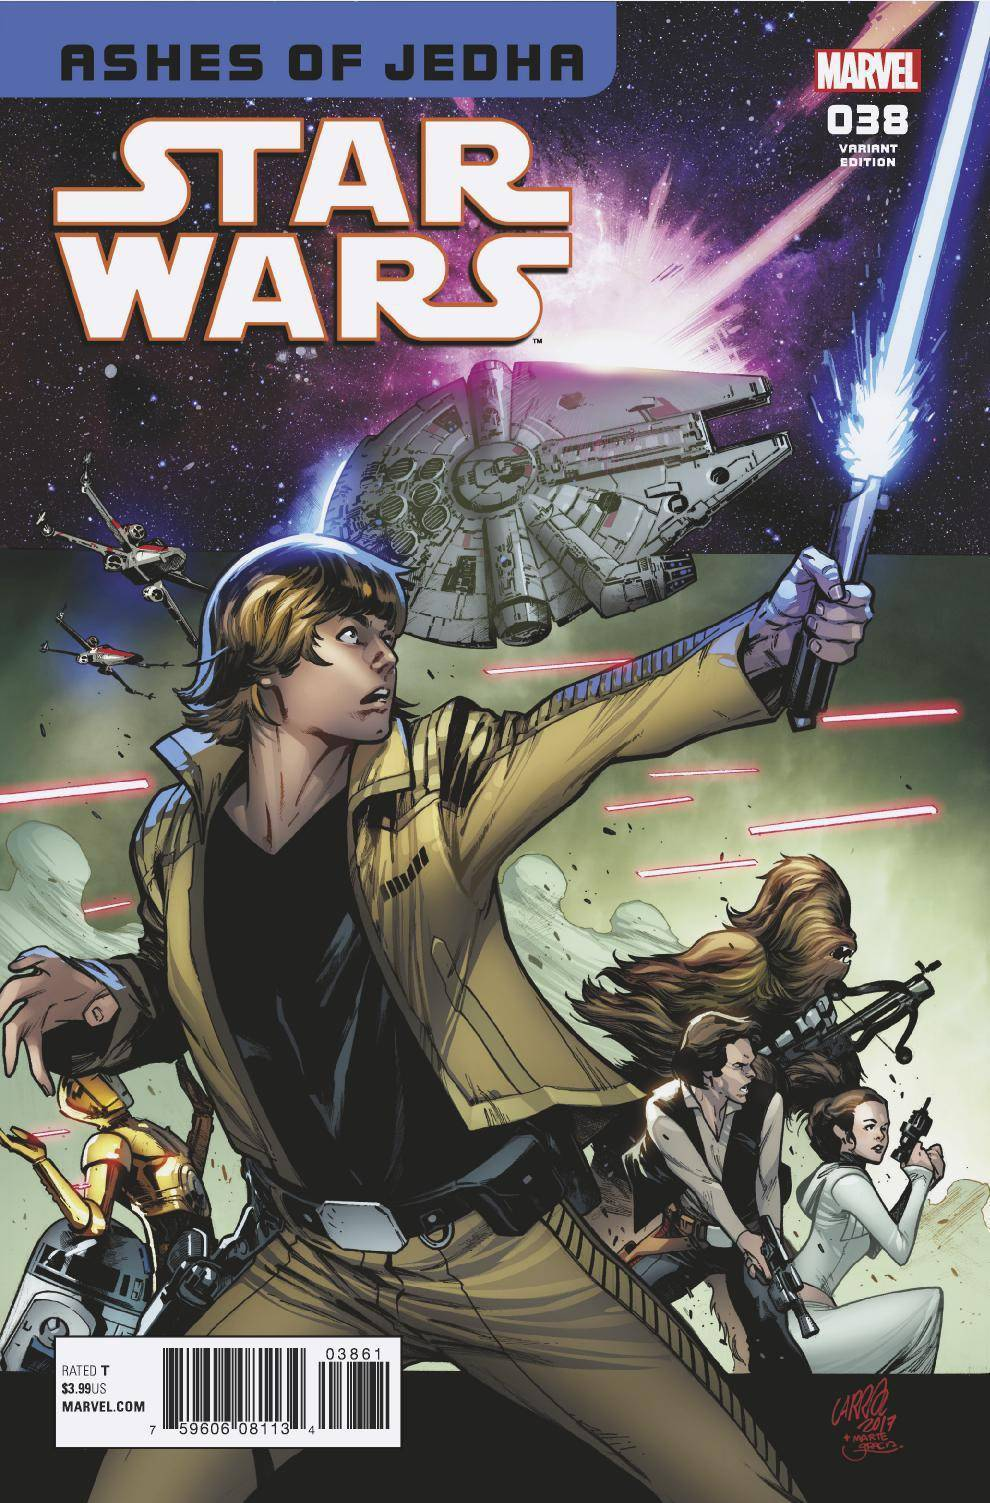 Star Wars #38 1:25 Ratio Variant